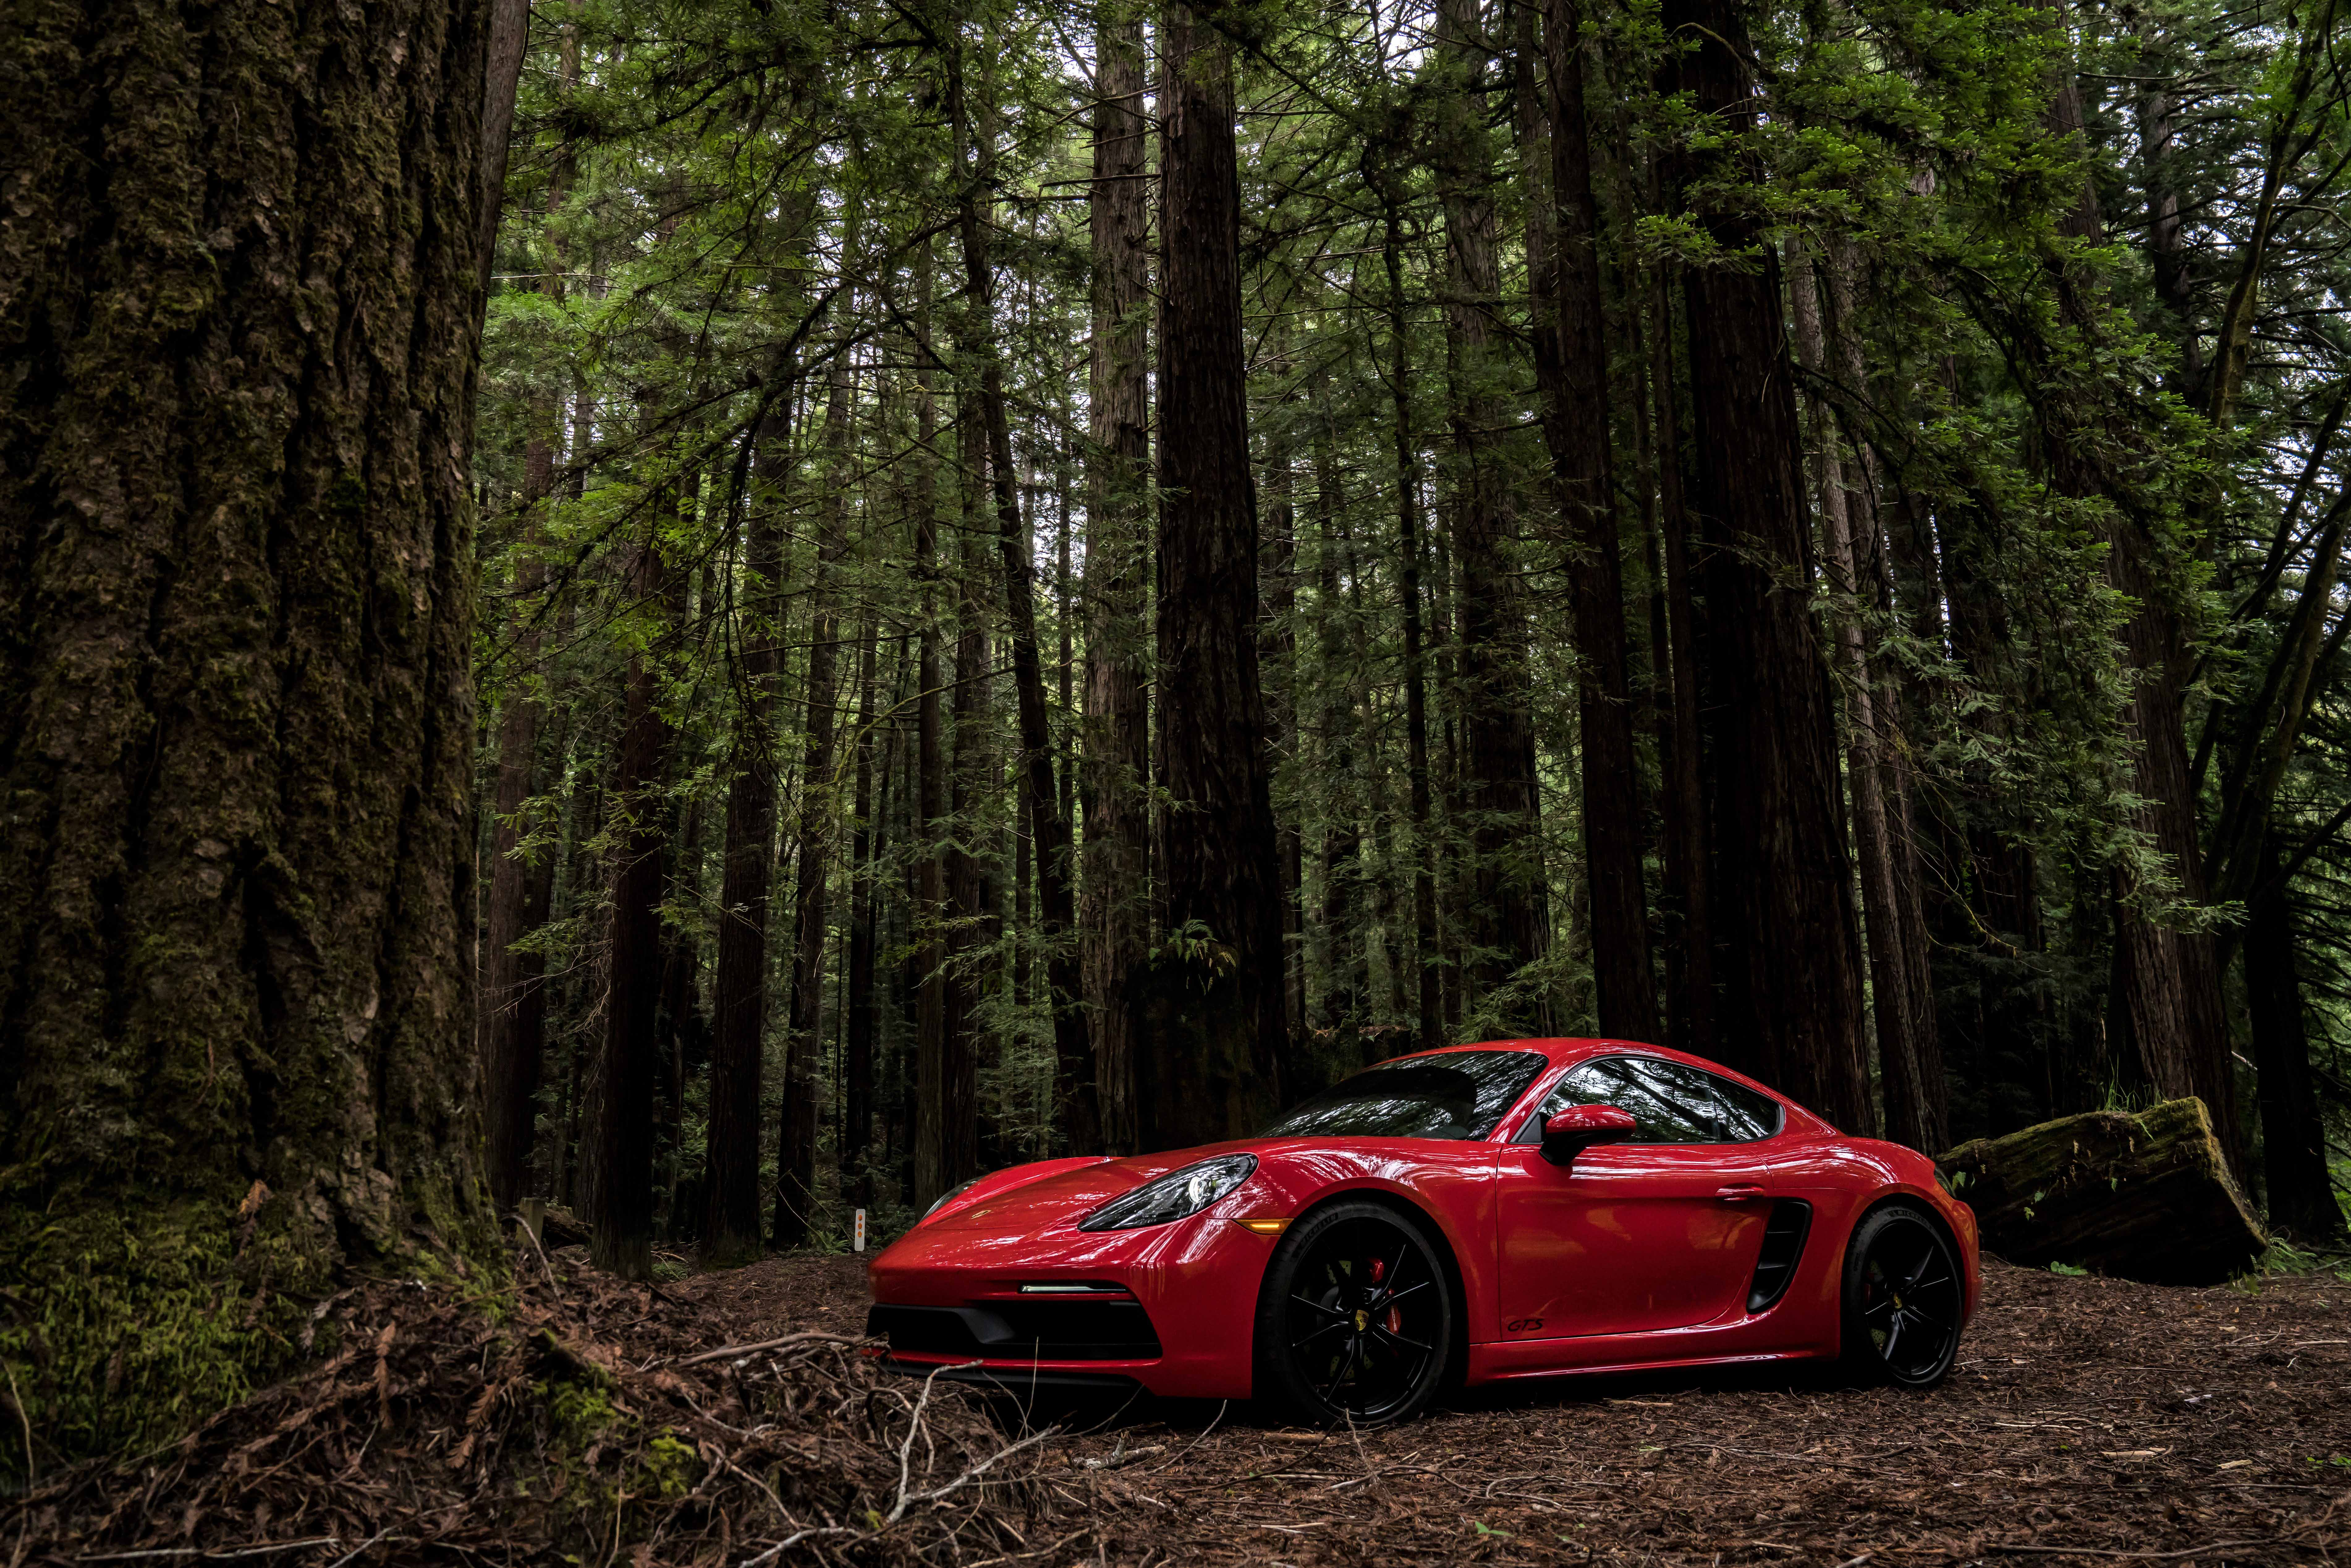 14 Secret Tips To Taking Great Car Photos From A Professional Automotive Photographer